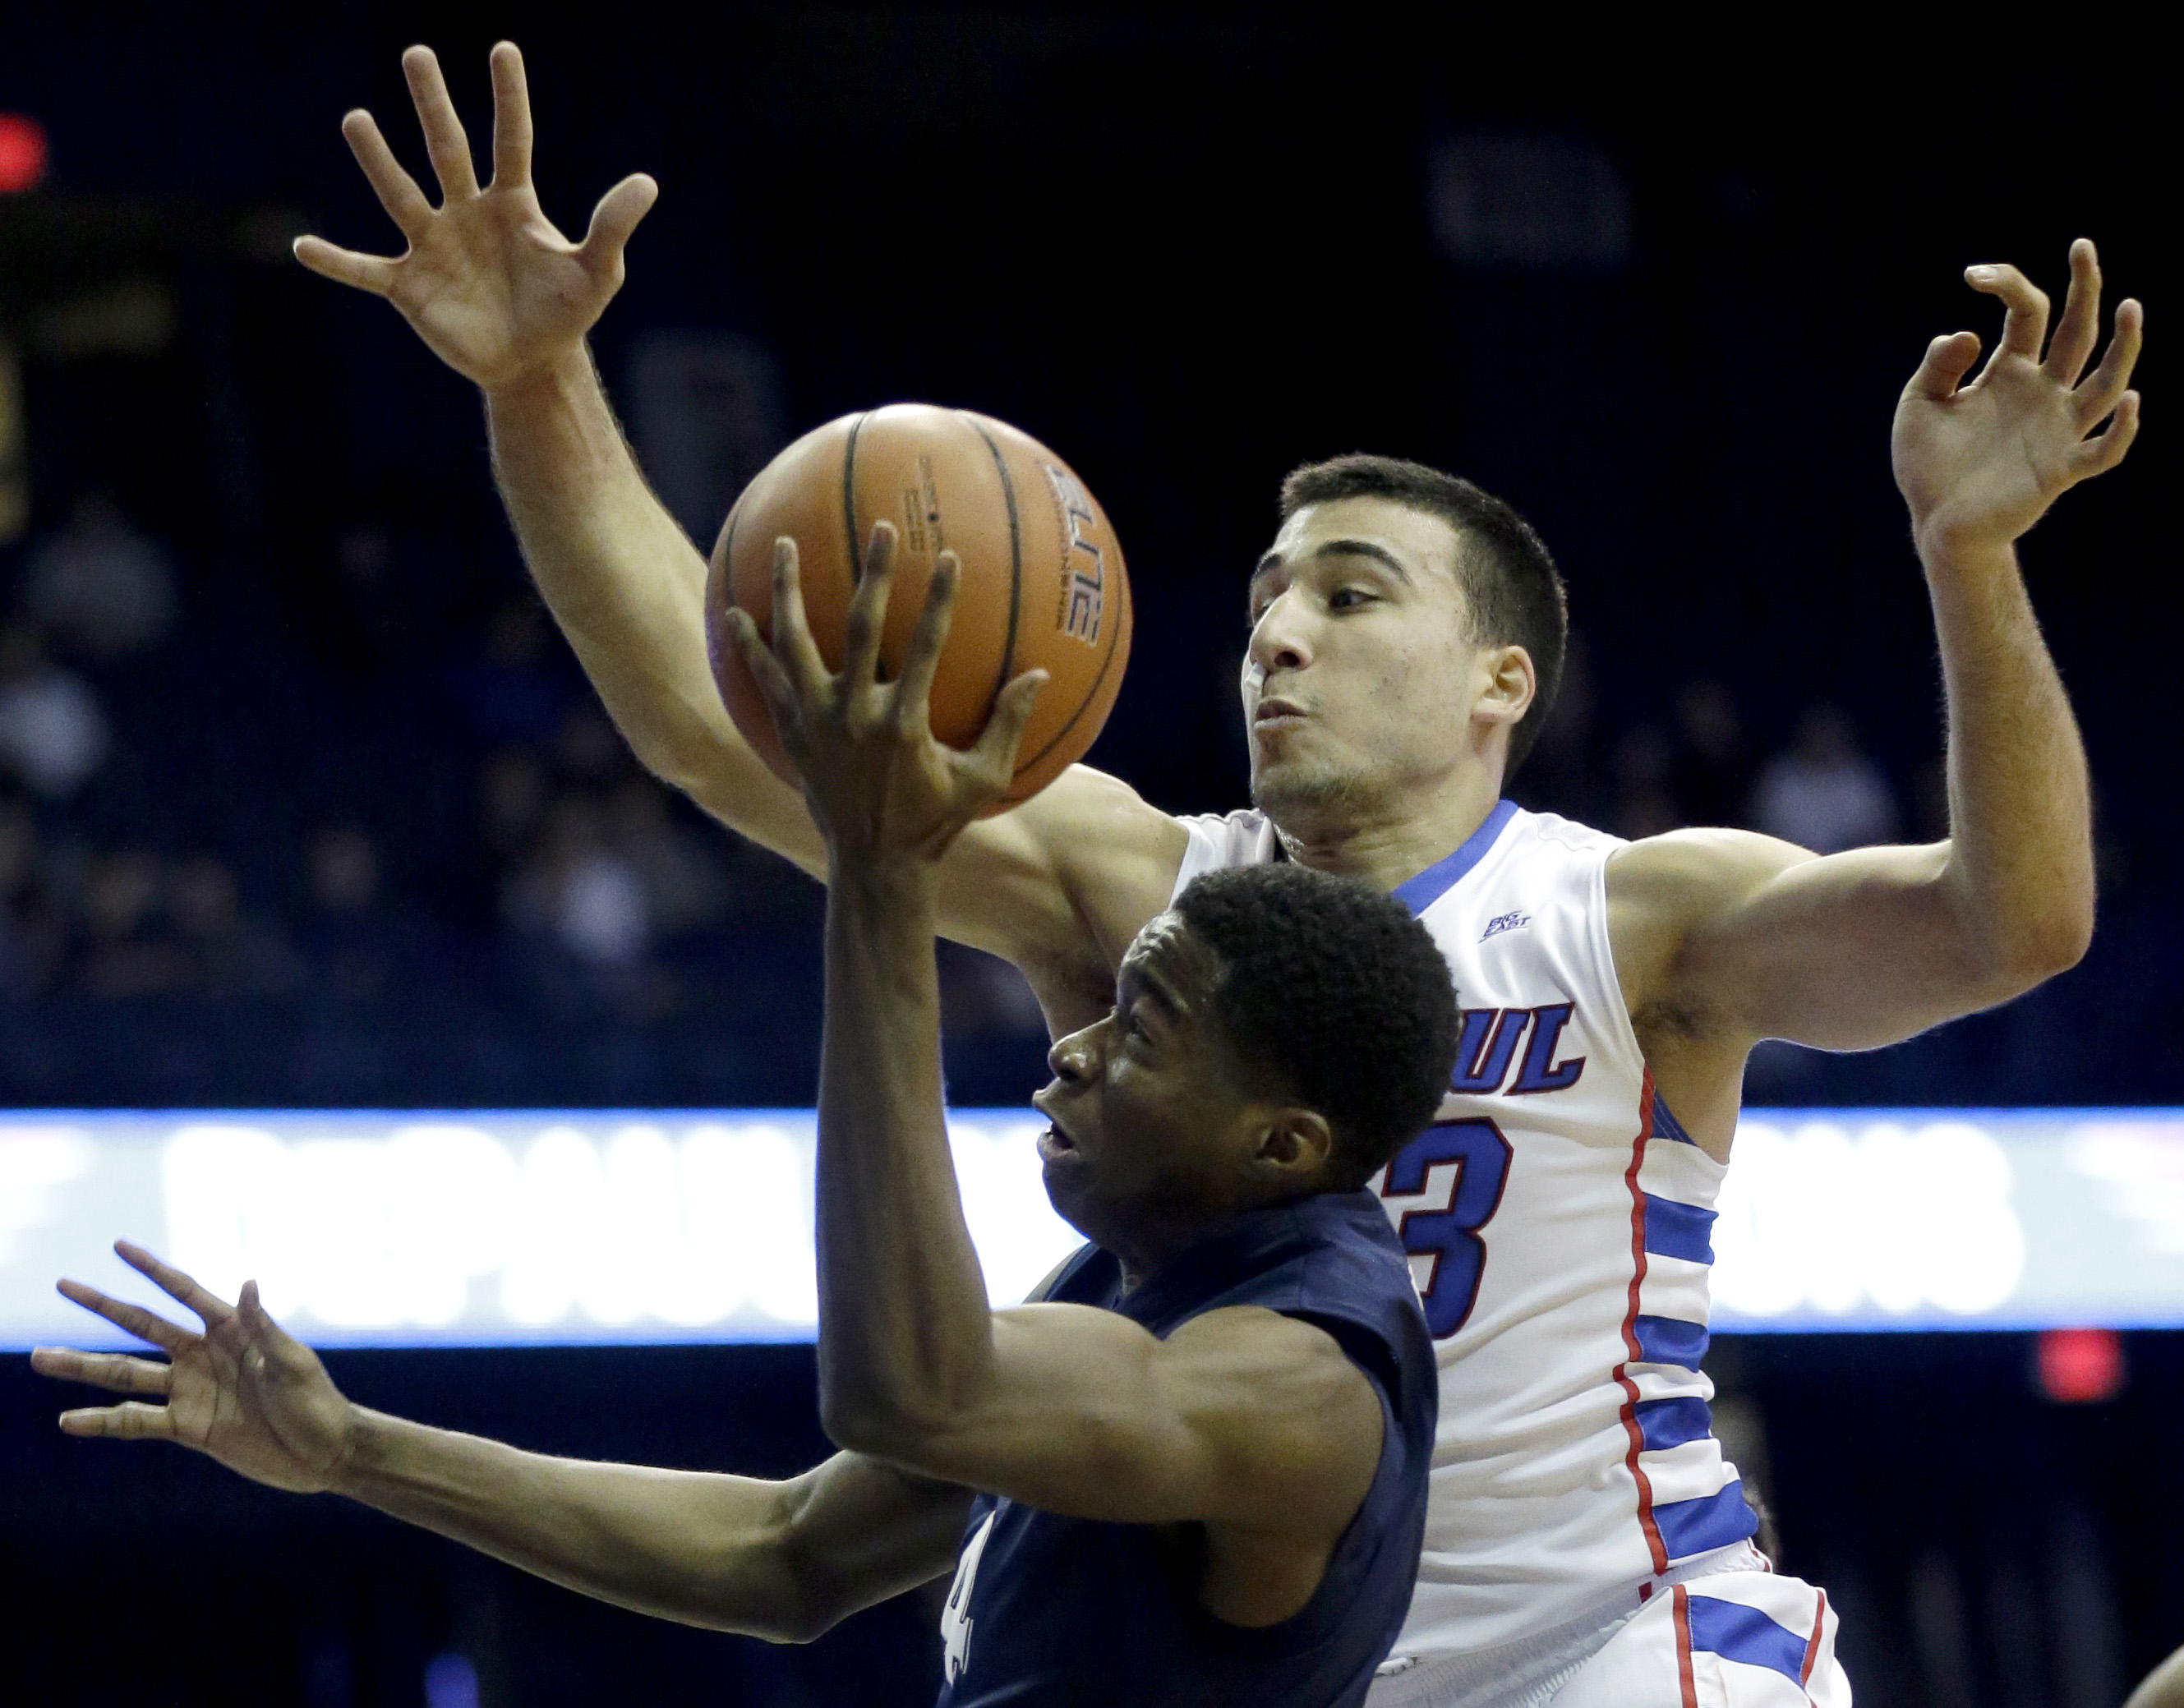 Xavier guard Edmond Sumner, bottom, drives to the basket as DePaul guard Erten Gazi guards during the first half of an NCAA college basketball game Saturday, Jan. 30, 2016, in Rosemont, Ill. (AP Photo/Nam Y. Huh)